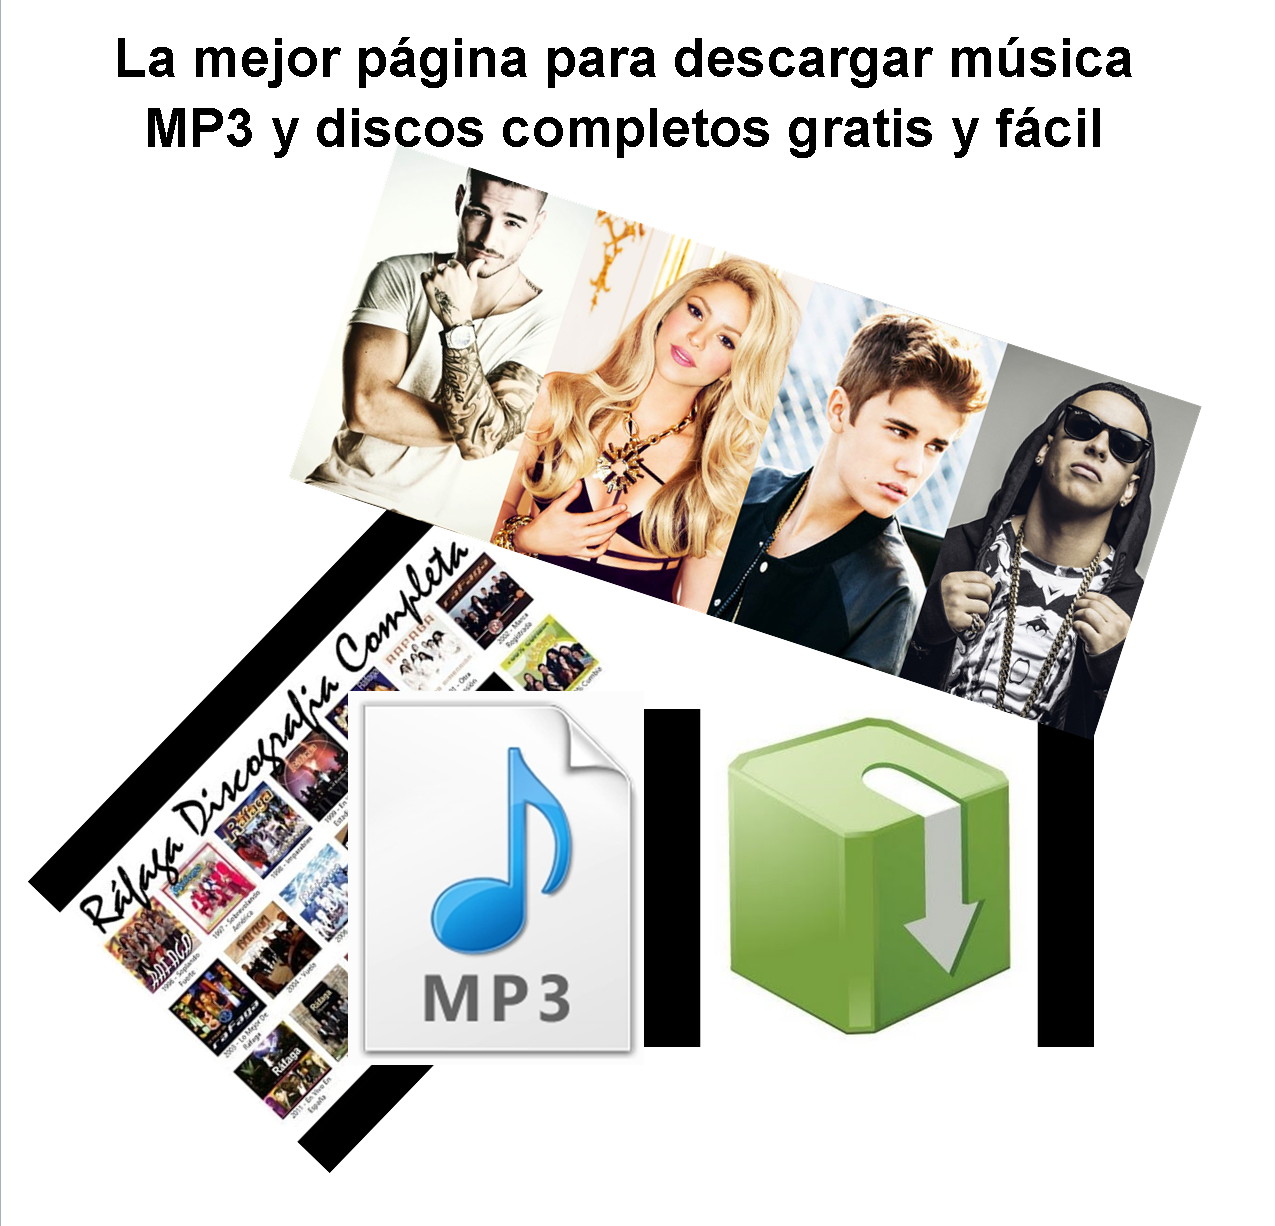 albuns completos mp3